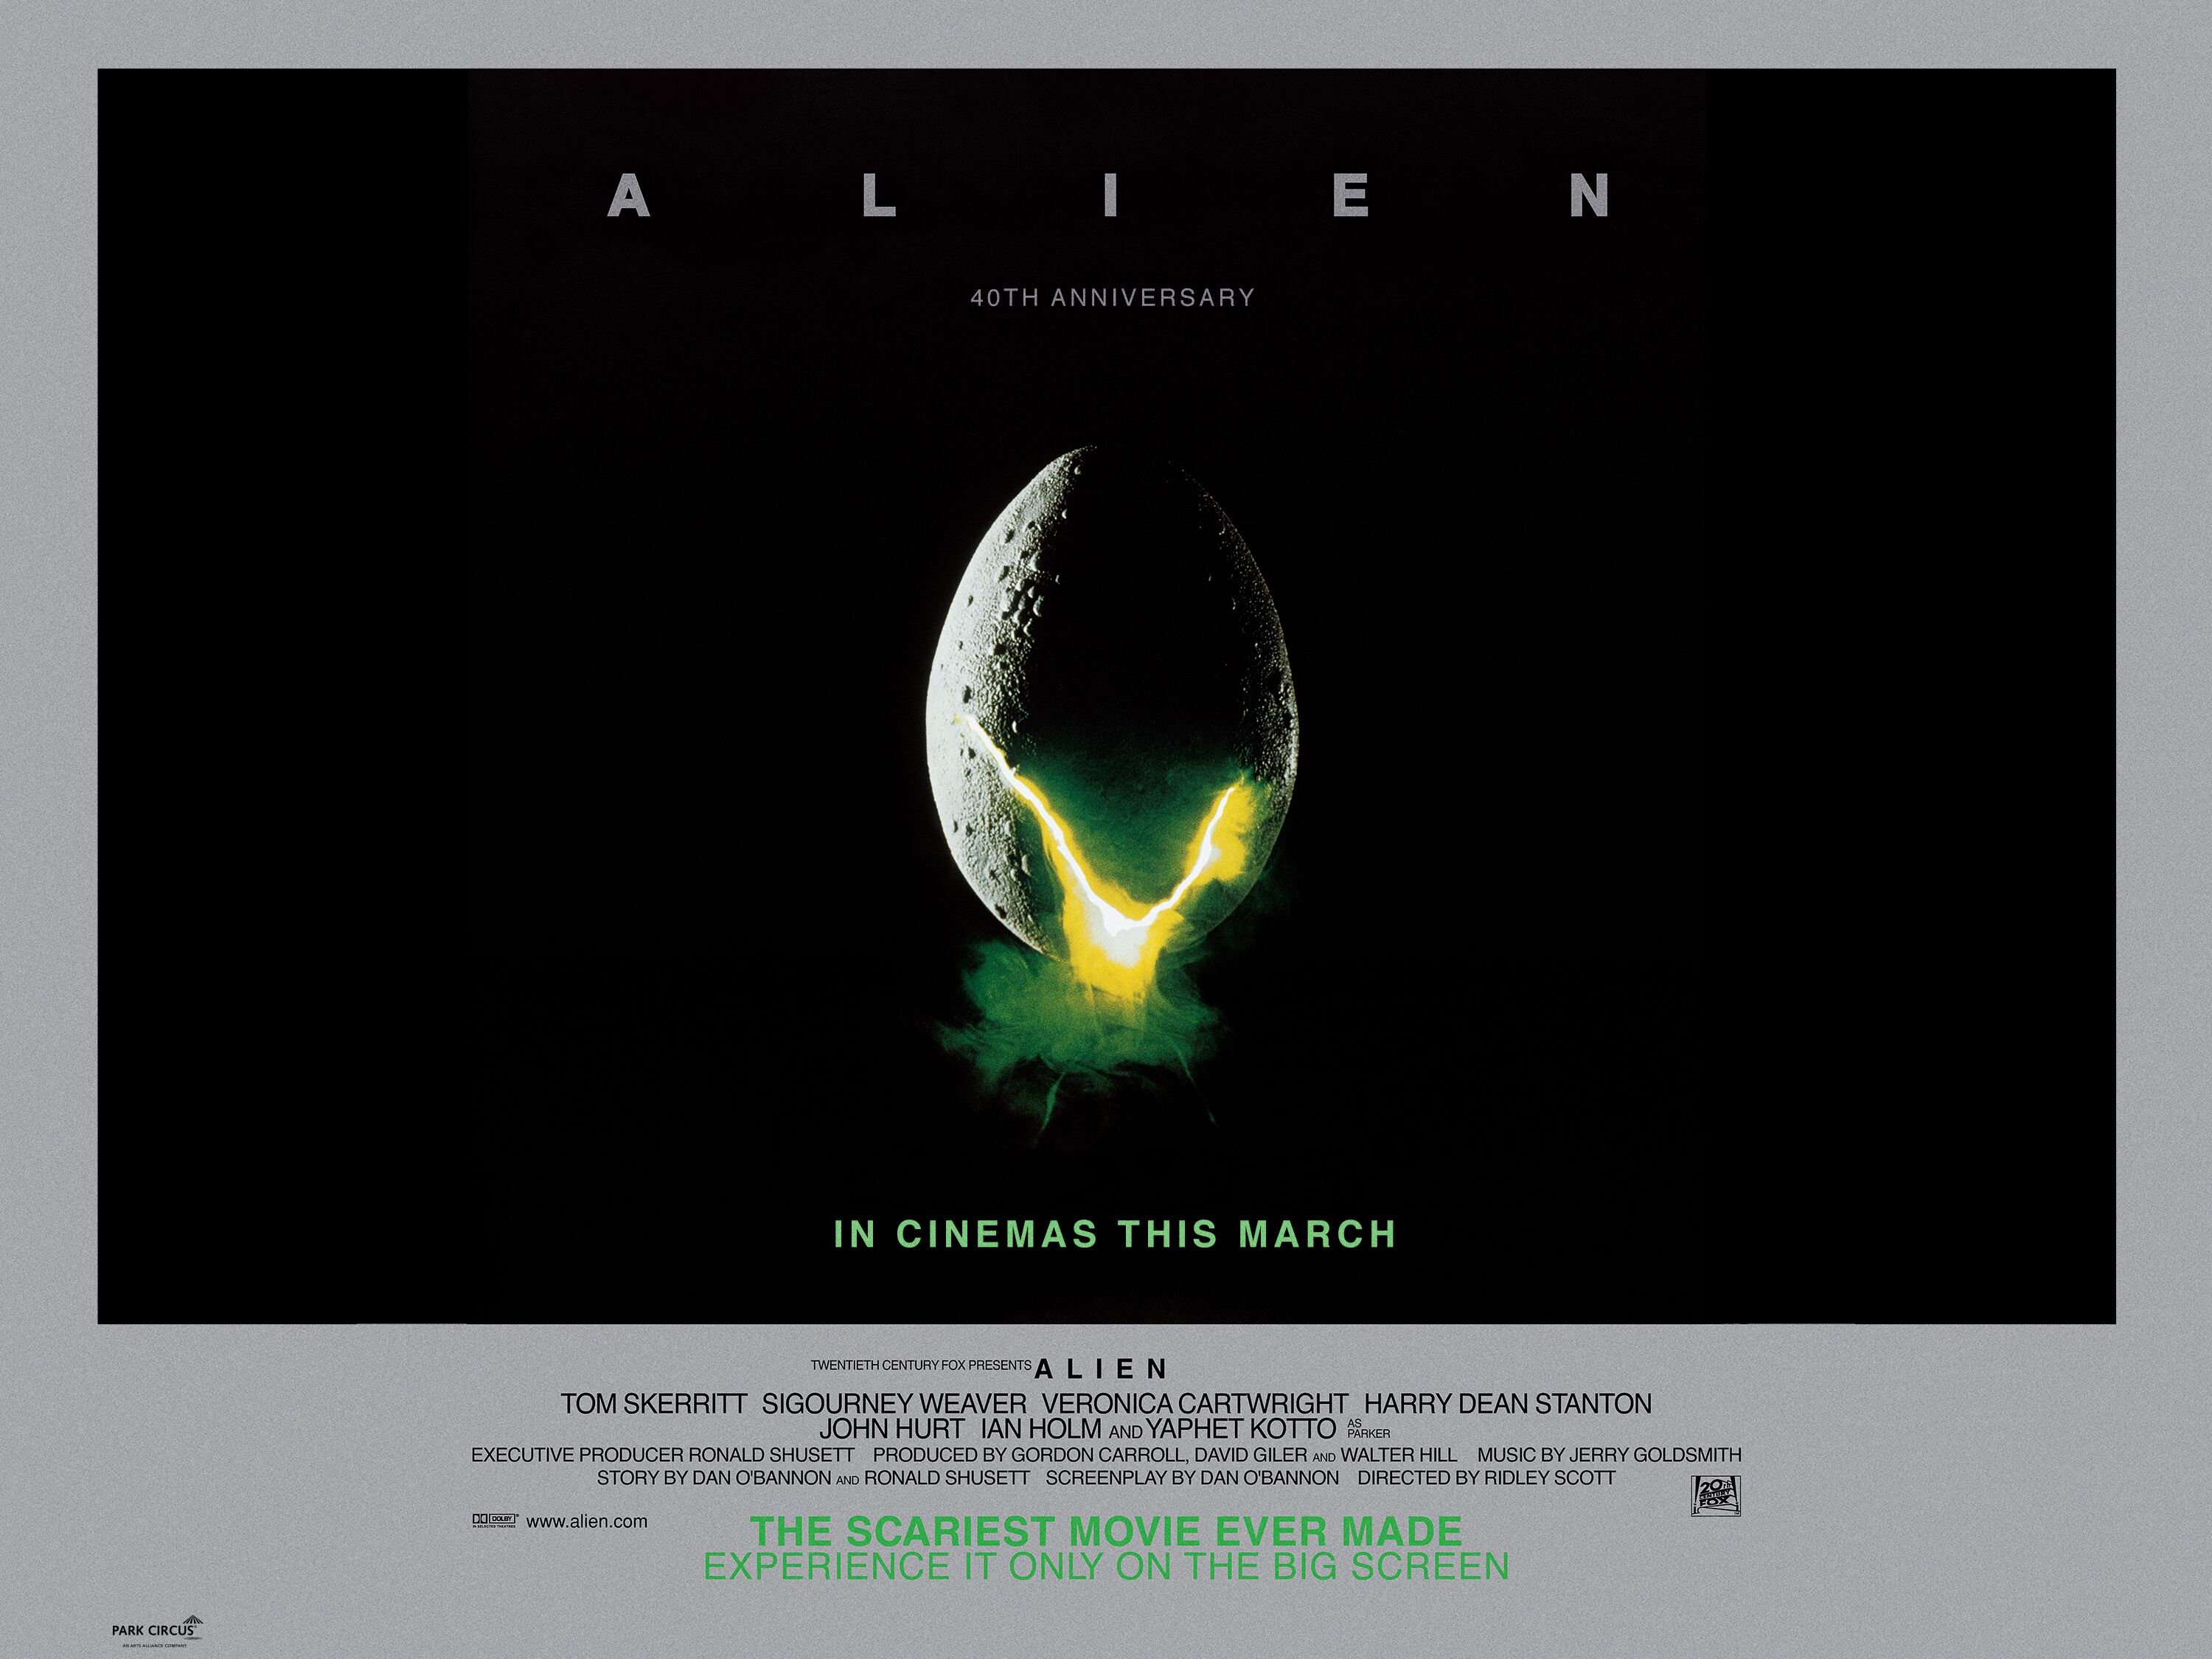 [News] Catch the 4K Restoration of ALIEN This March